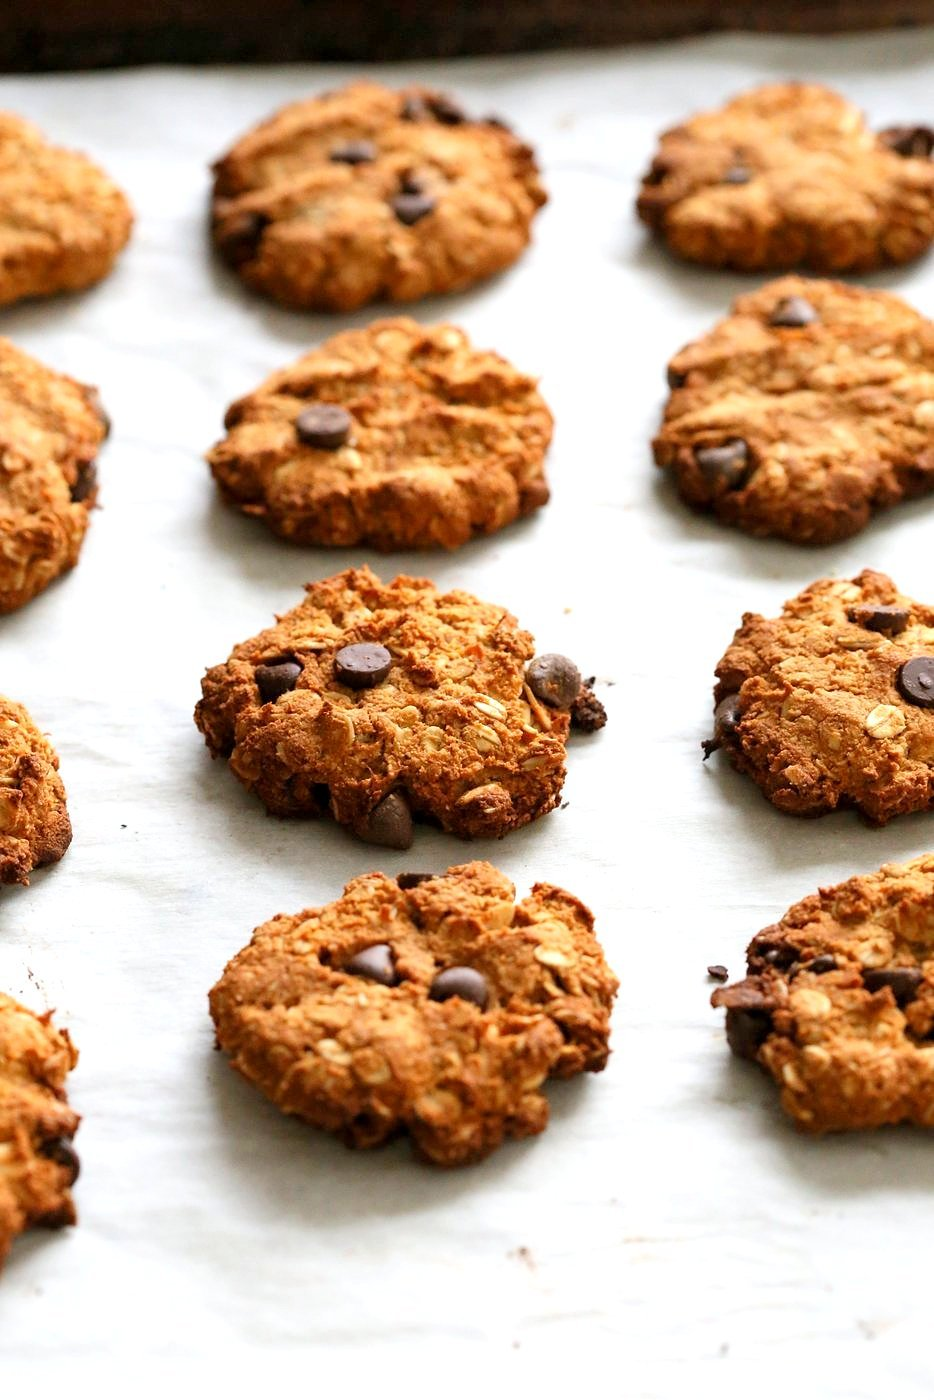 Banana Oatmeal Cookies. Gluten-free Banana Oatmeal Breakfast Cookies with Chocolate chips. 1 Bowl 20 minute Banana Cookies. Vegan Gluten-free Recipe | VeganRicha.com